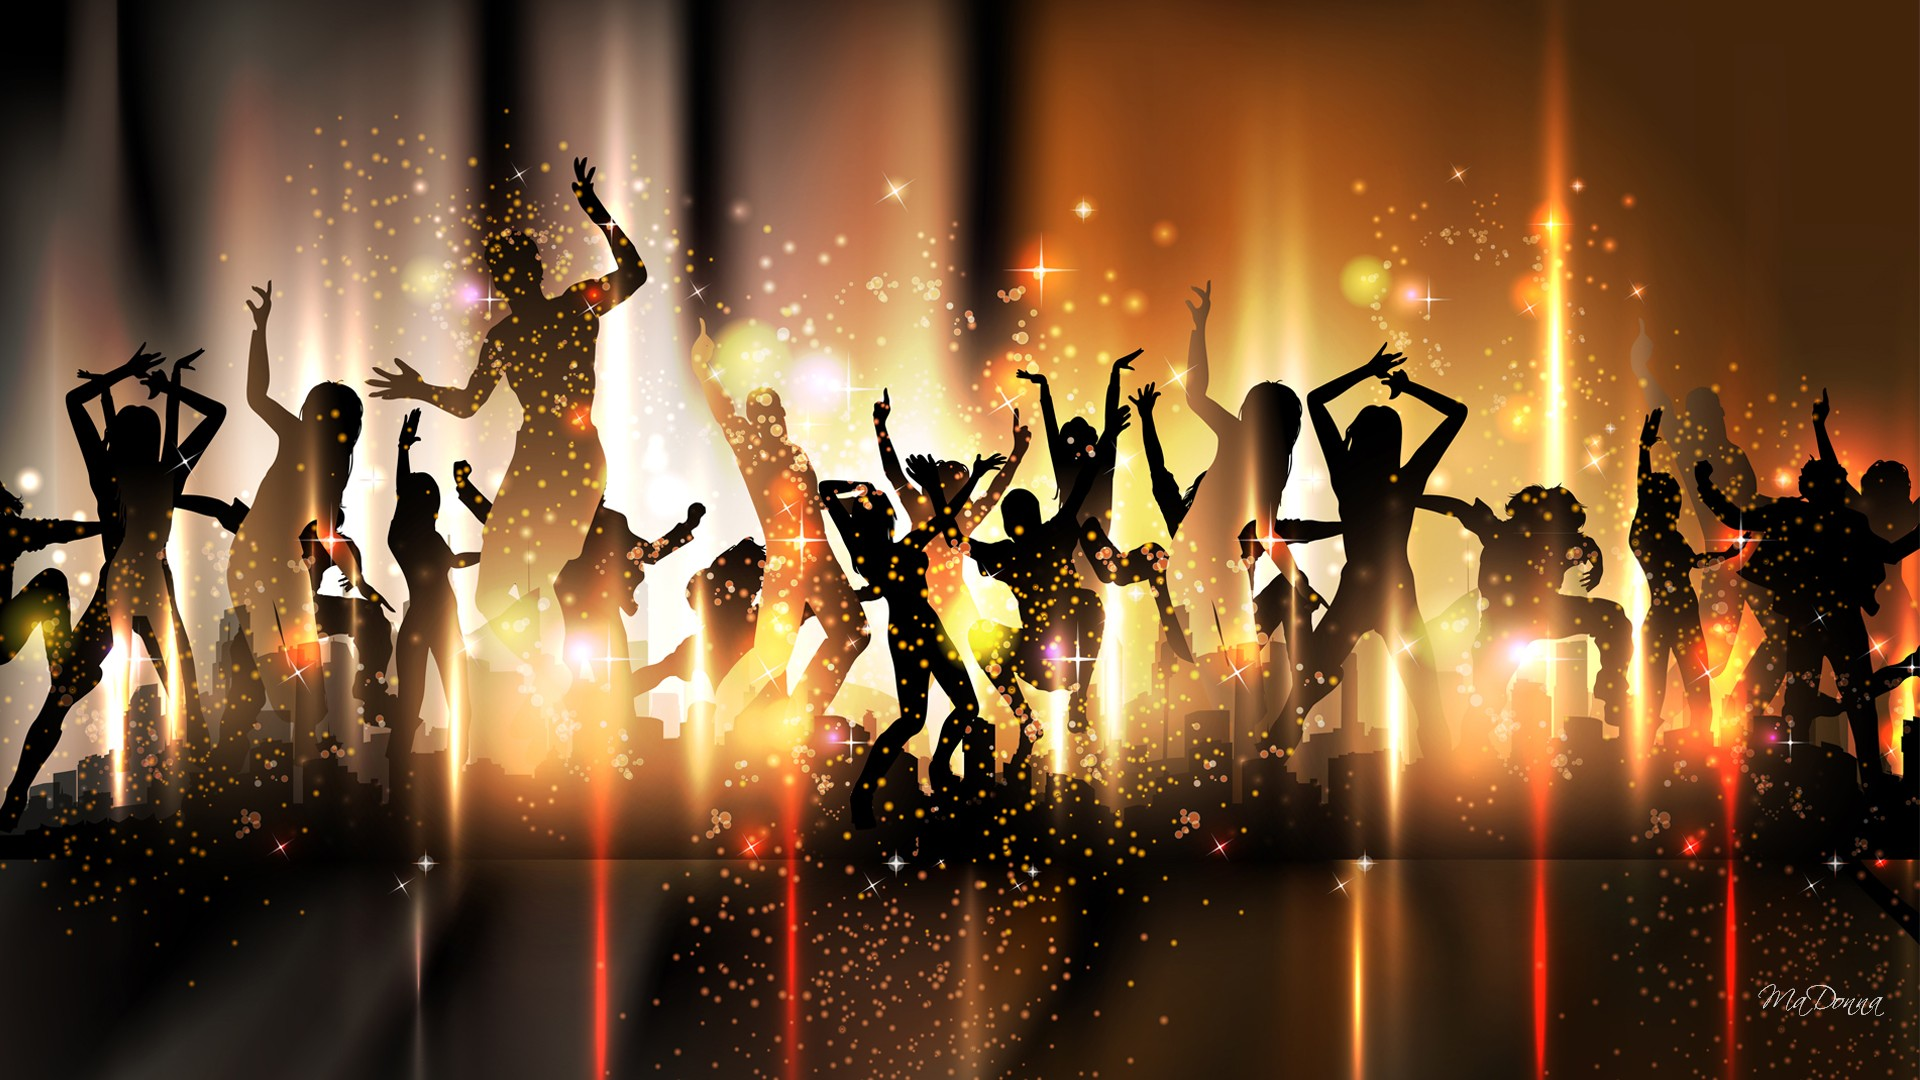 Most Inspiring Wallpaper Music Party - dance_party_lights_new_years_music_sparkle_hd-wallpaper-1288908  Trends_548958.jpg